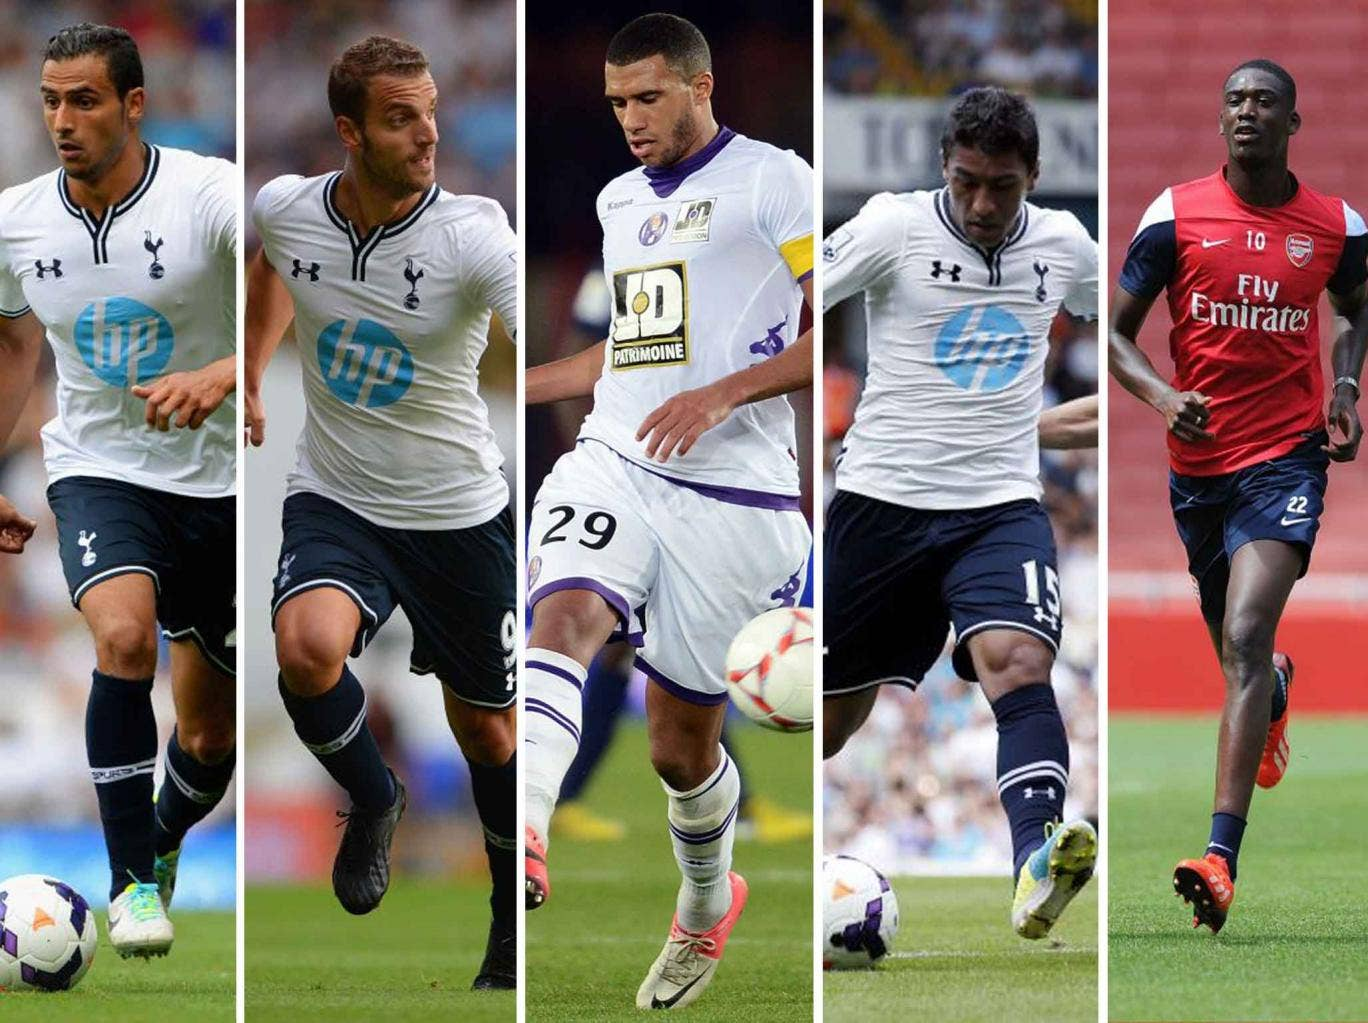 Spurs signings from left, Nacer Chadli, Roberto Soldado, Etienne Capoue, Paulinho. Arsenal's sole signing this summer has been Yaya Sanogo, far right